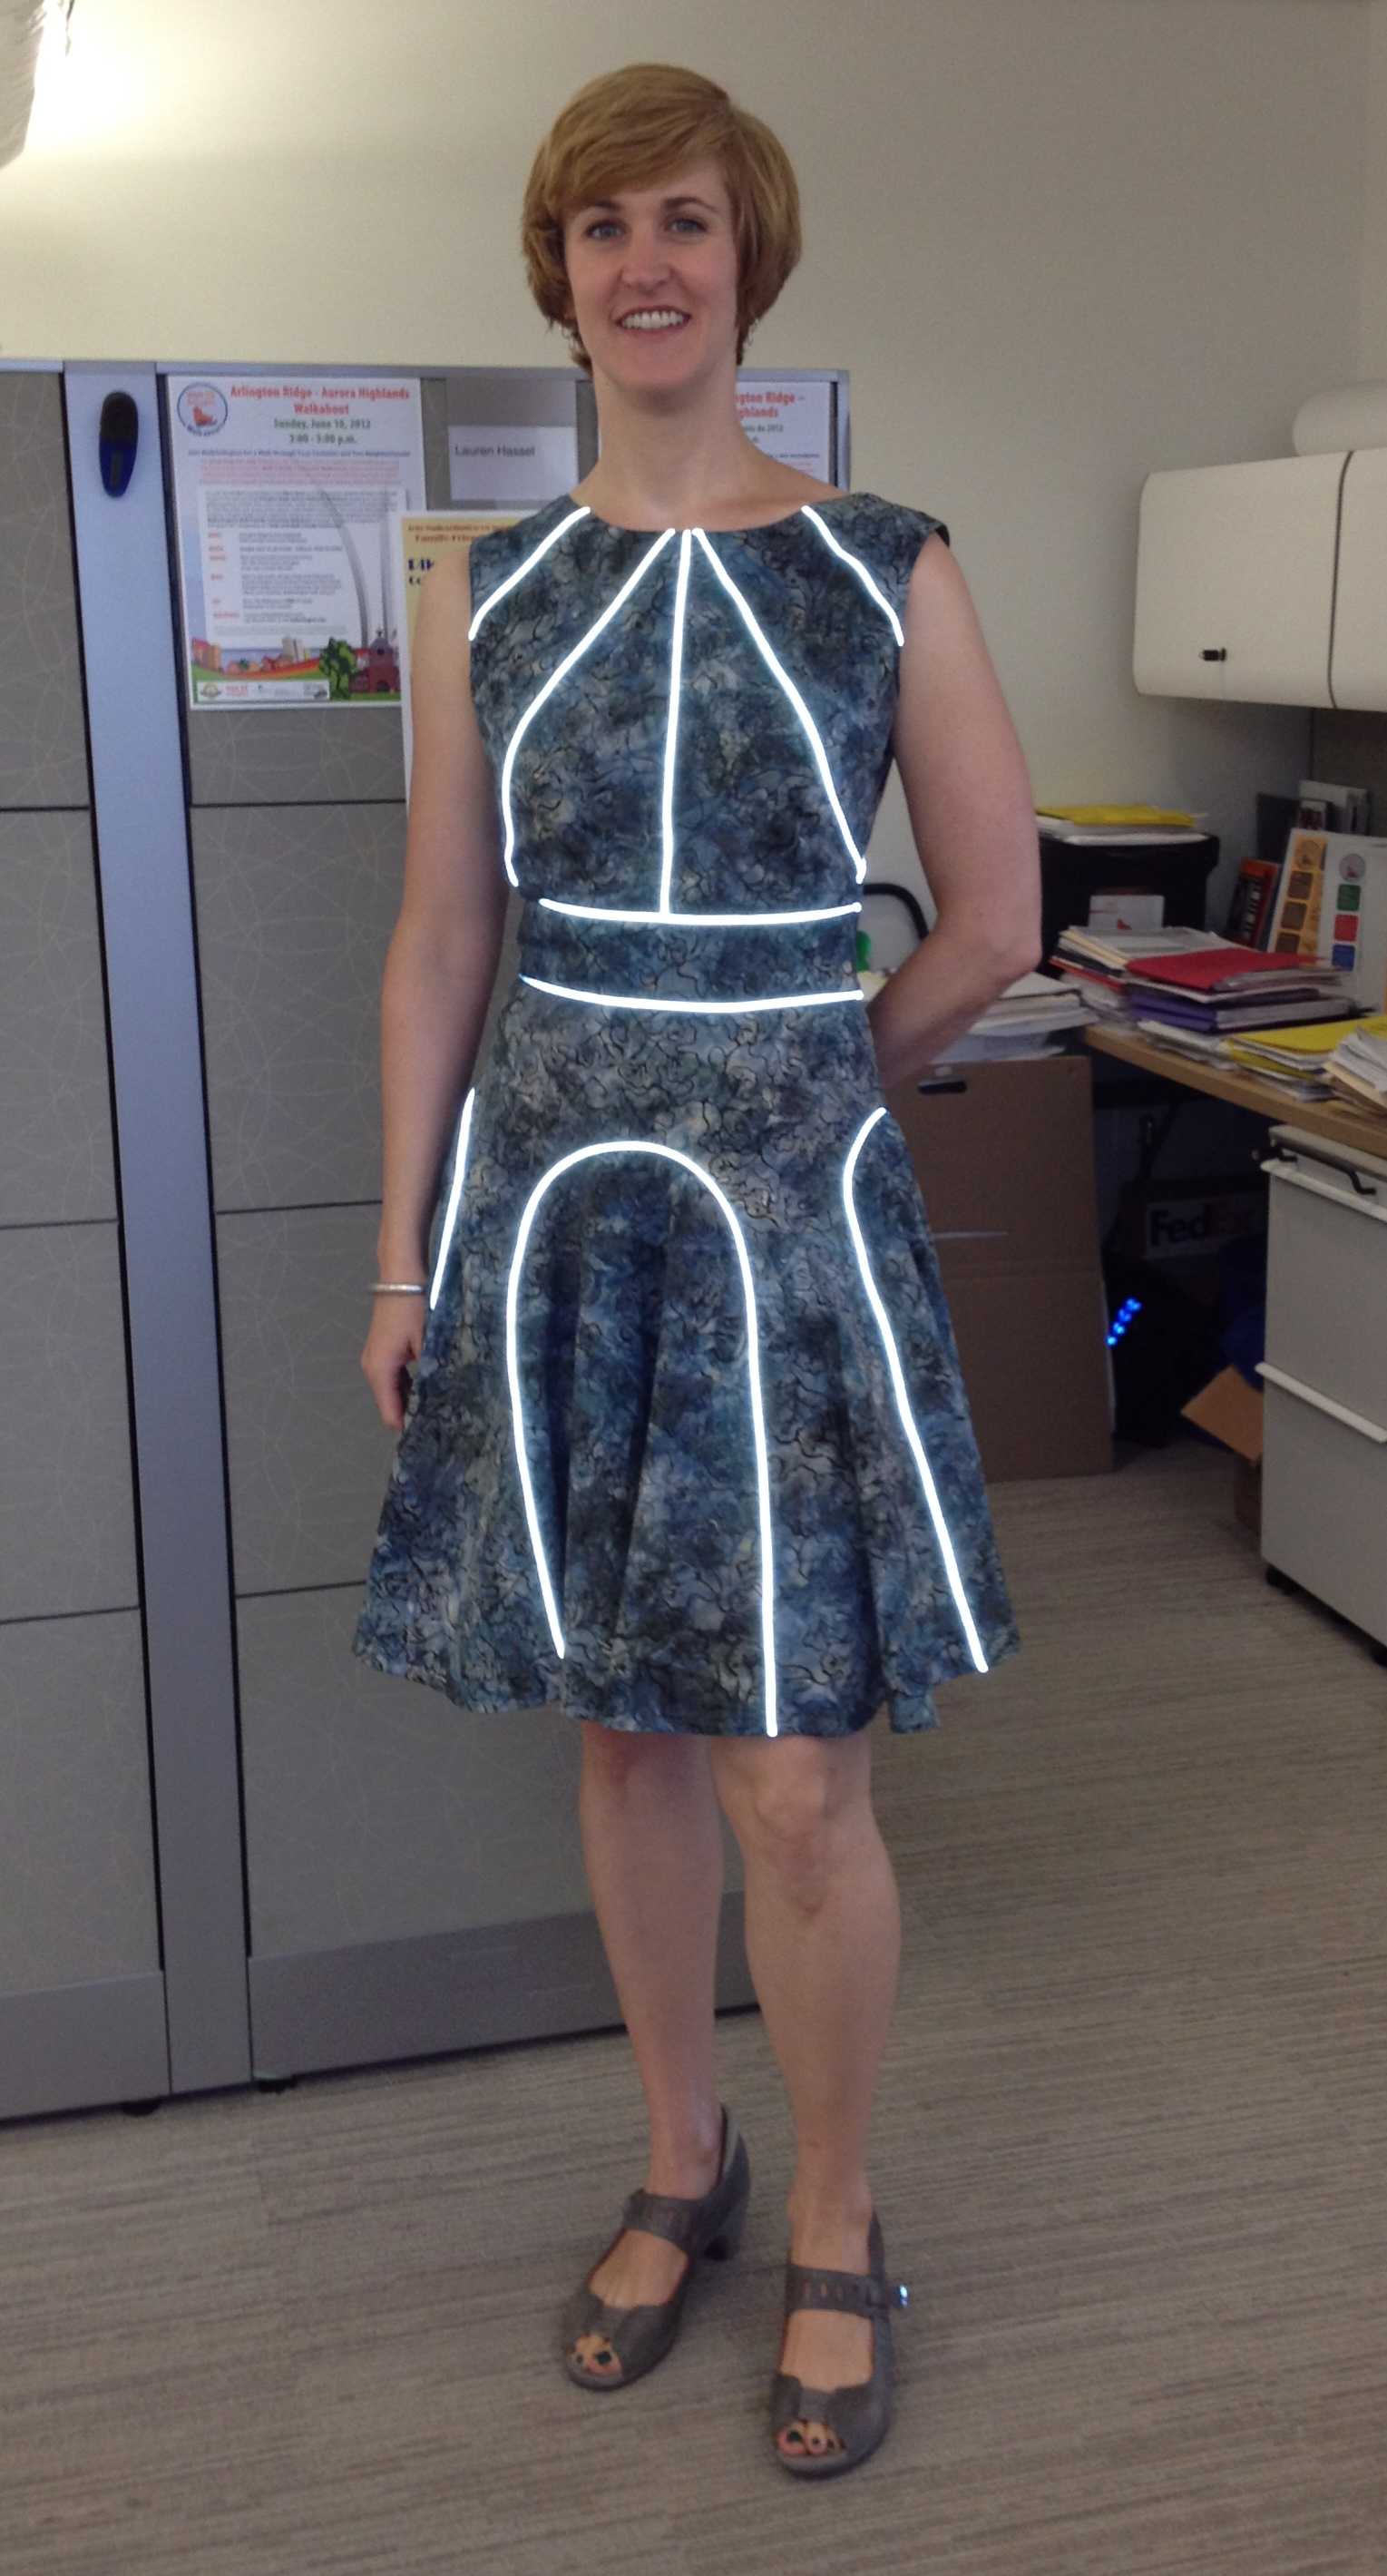 My Lovely Reflective Bicycle Dress Tinlizzieridesagain